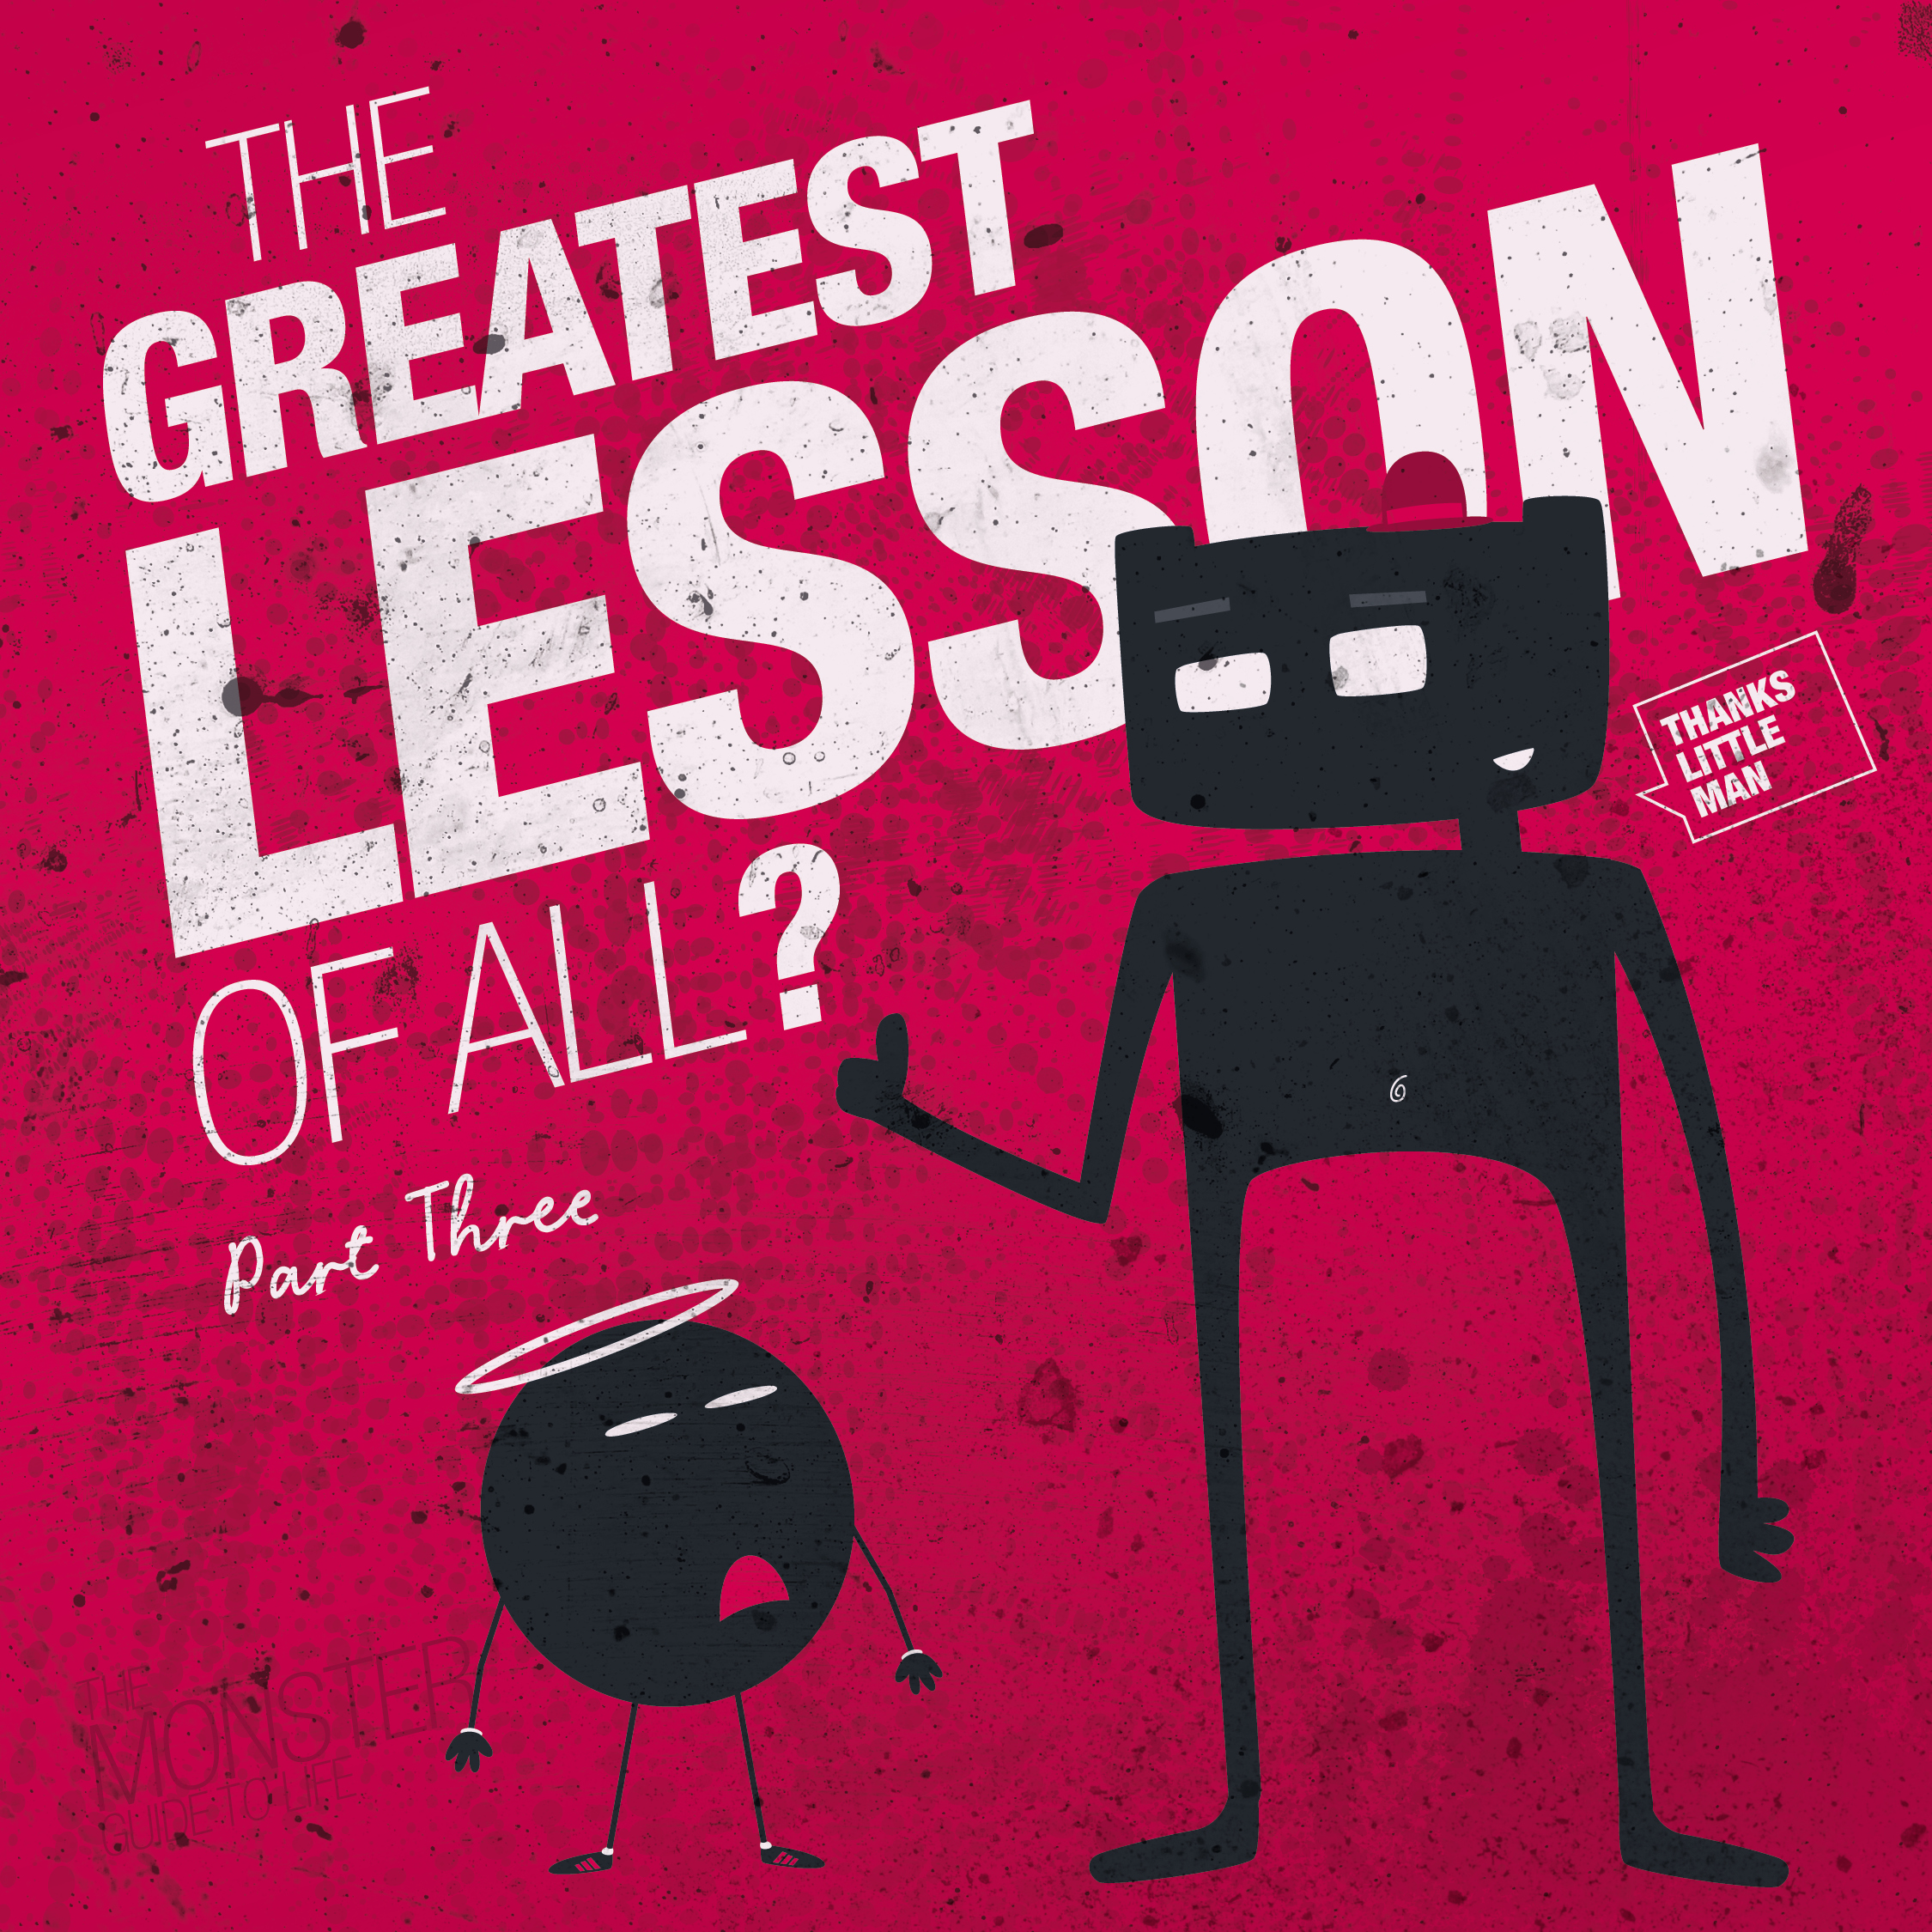 The Greatest Lesson Of All? Part Three